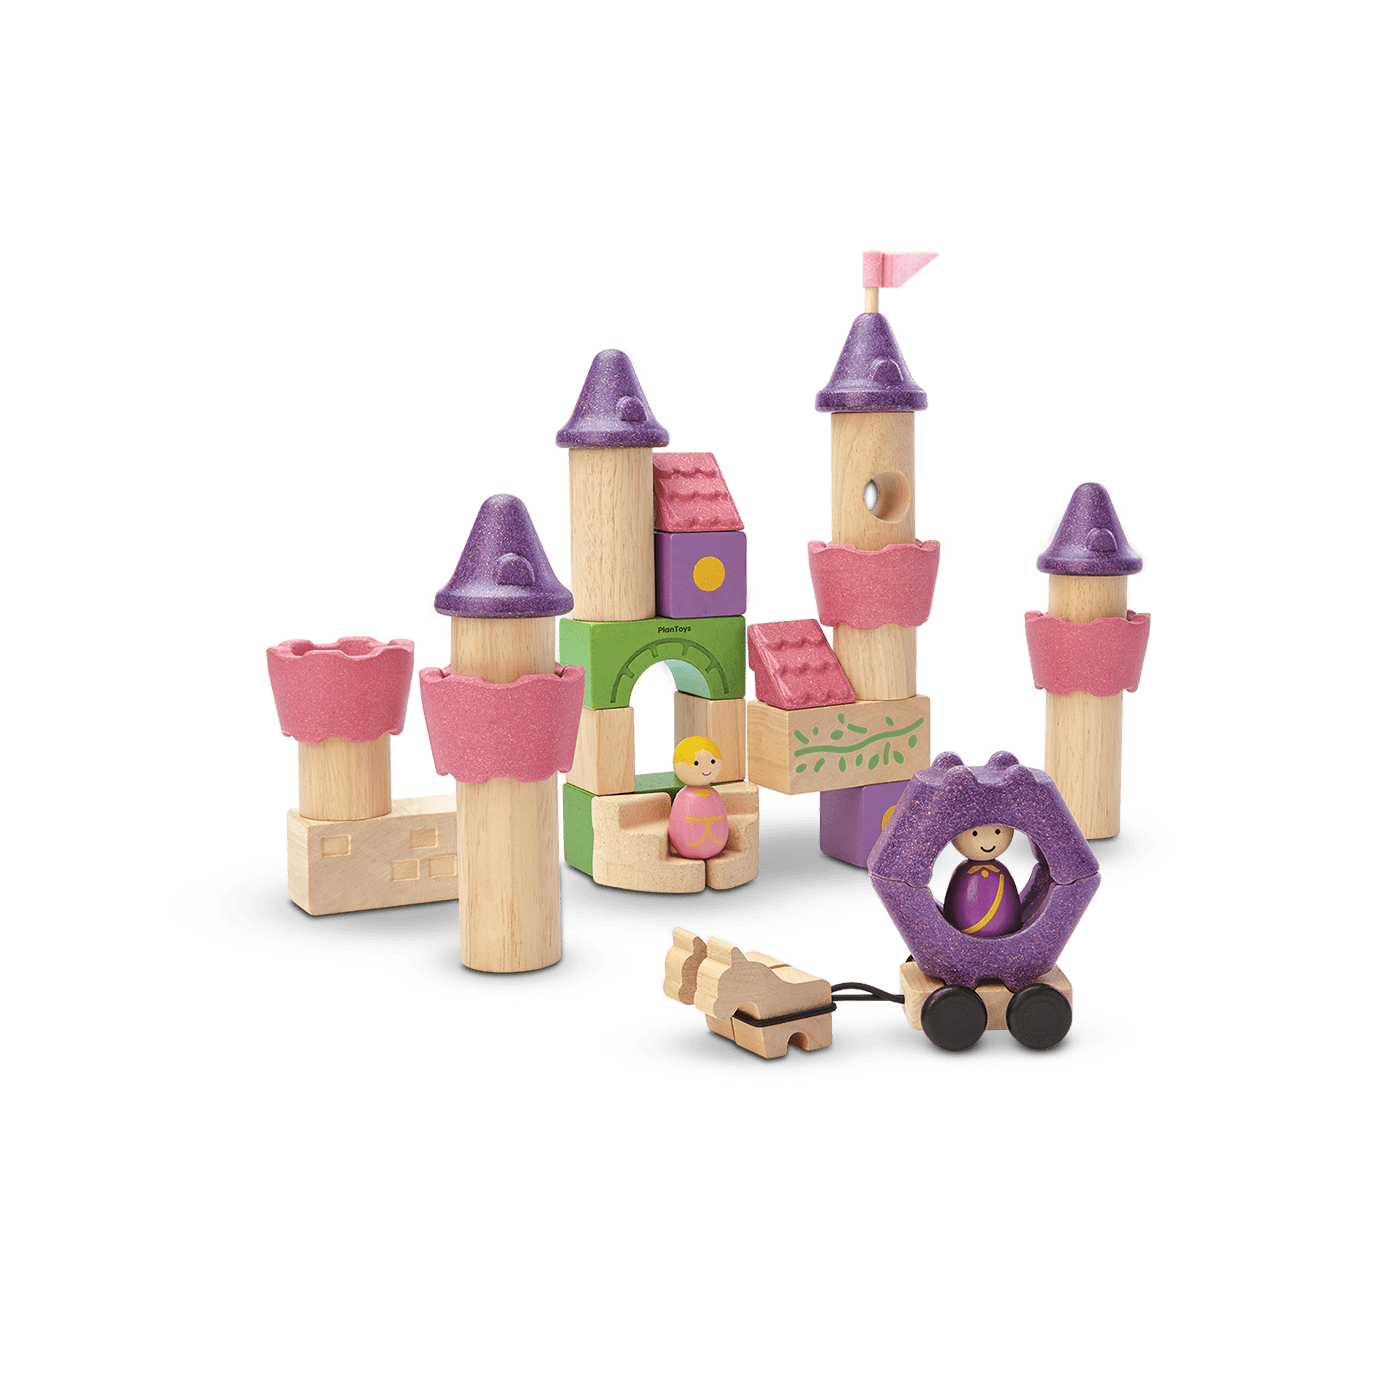 5650_PlanToys_FAIRY_TALE_BLOCKS_Blocks_and_Construction_Mathematical_Imagination_Fine_Motor_Language_and_Communications_Tactile_3yrs_Wooden_toys_Education_toys_Safety_Toys_Non-toxic_0.png